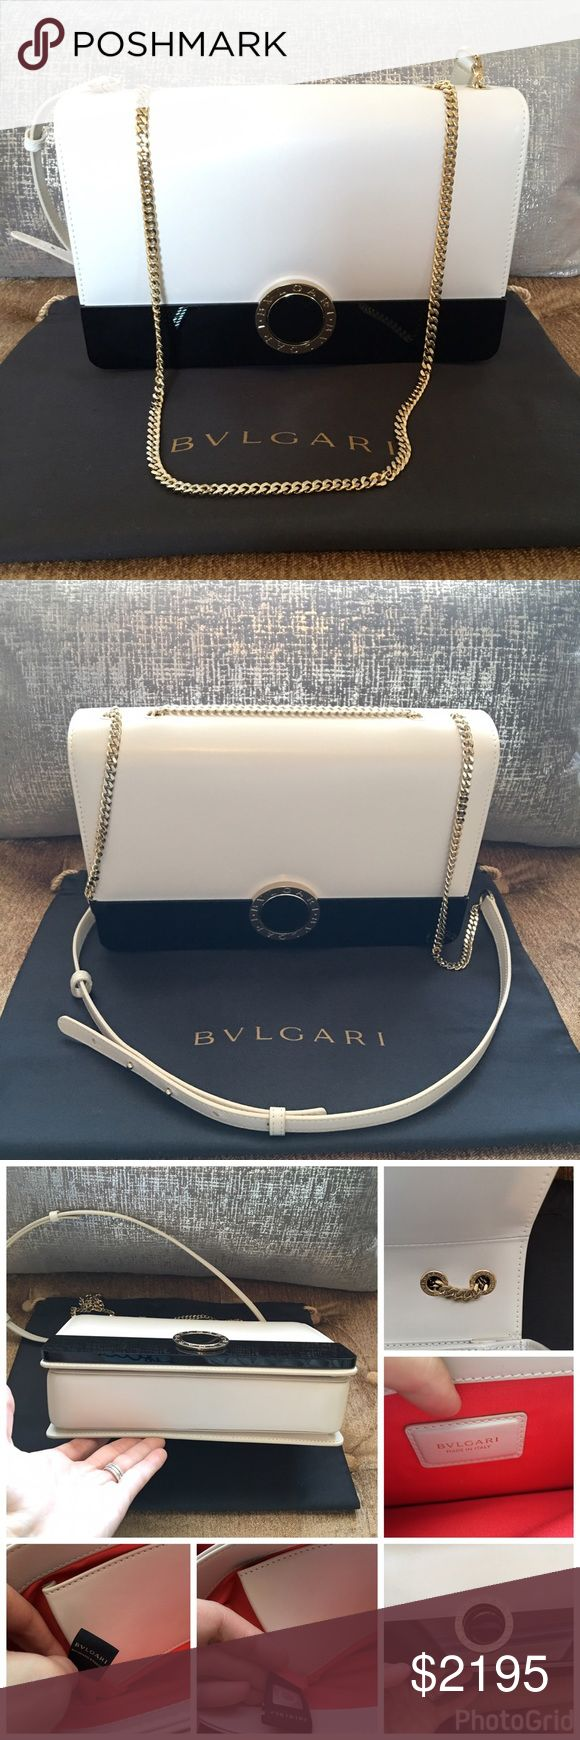 "Bvlgari Flap Cover Black and White Shoulder Bag Gorgeous Unique Bvlgari ""Bulgari Bulgari"" Flap cover two-tone black and white calf leather with brass light gold plated metal parts. Black 'Perspicio' bar, iconic double logo motif and magnetic closure finish in black enamel. Adjustable leather and chain strap sliding for different ways of wear. White leather has a slight shine for a chyc look. Medium model. Excellent condition with minor wear to leather. Please view photos. Comes with dustbag…"